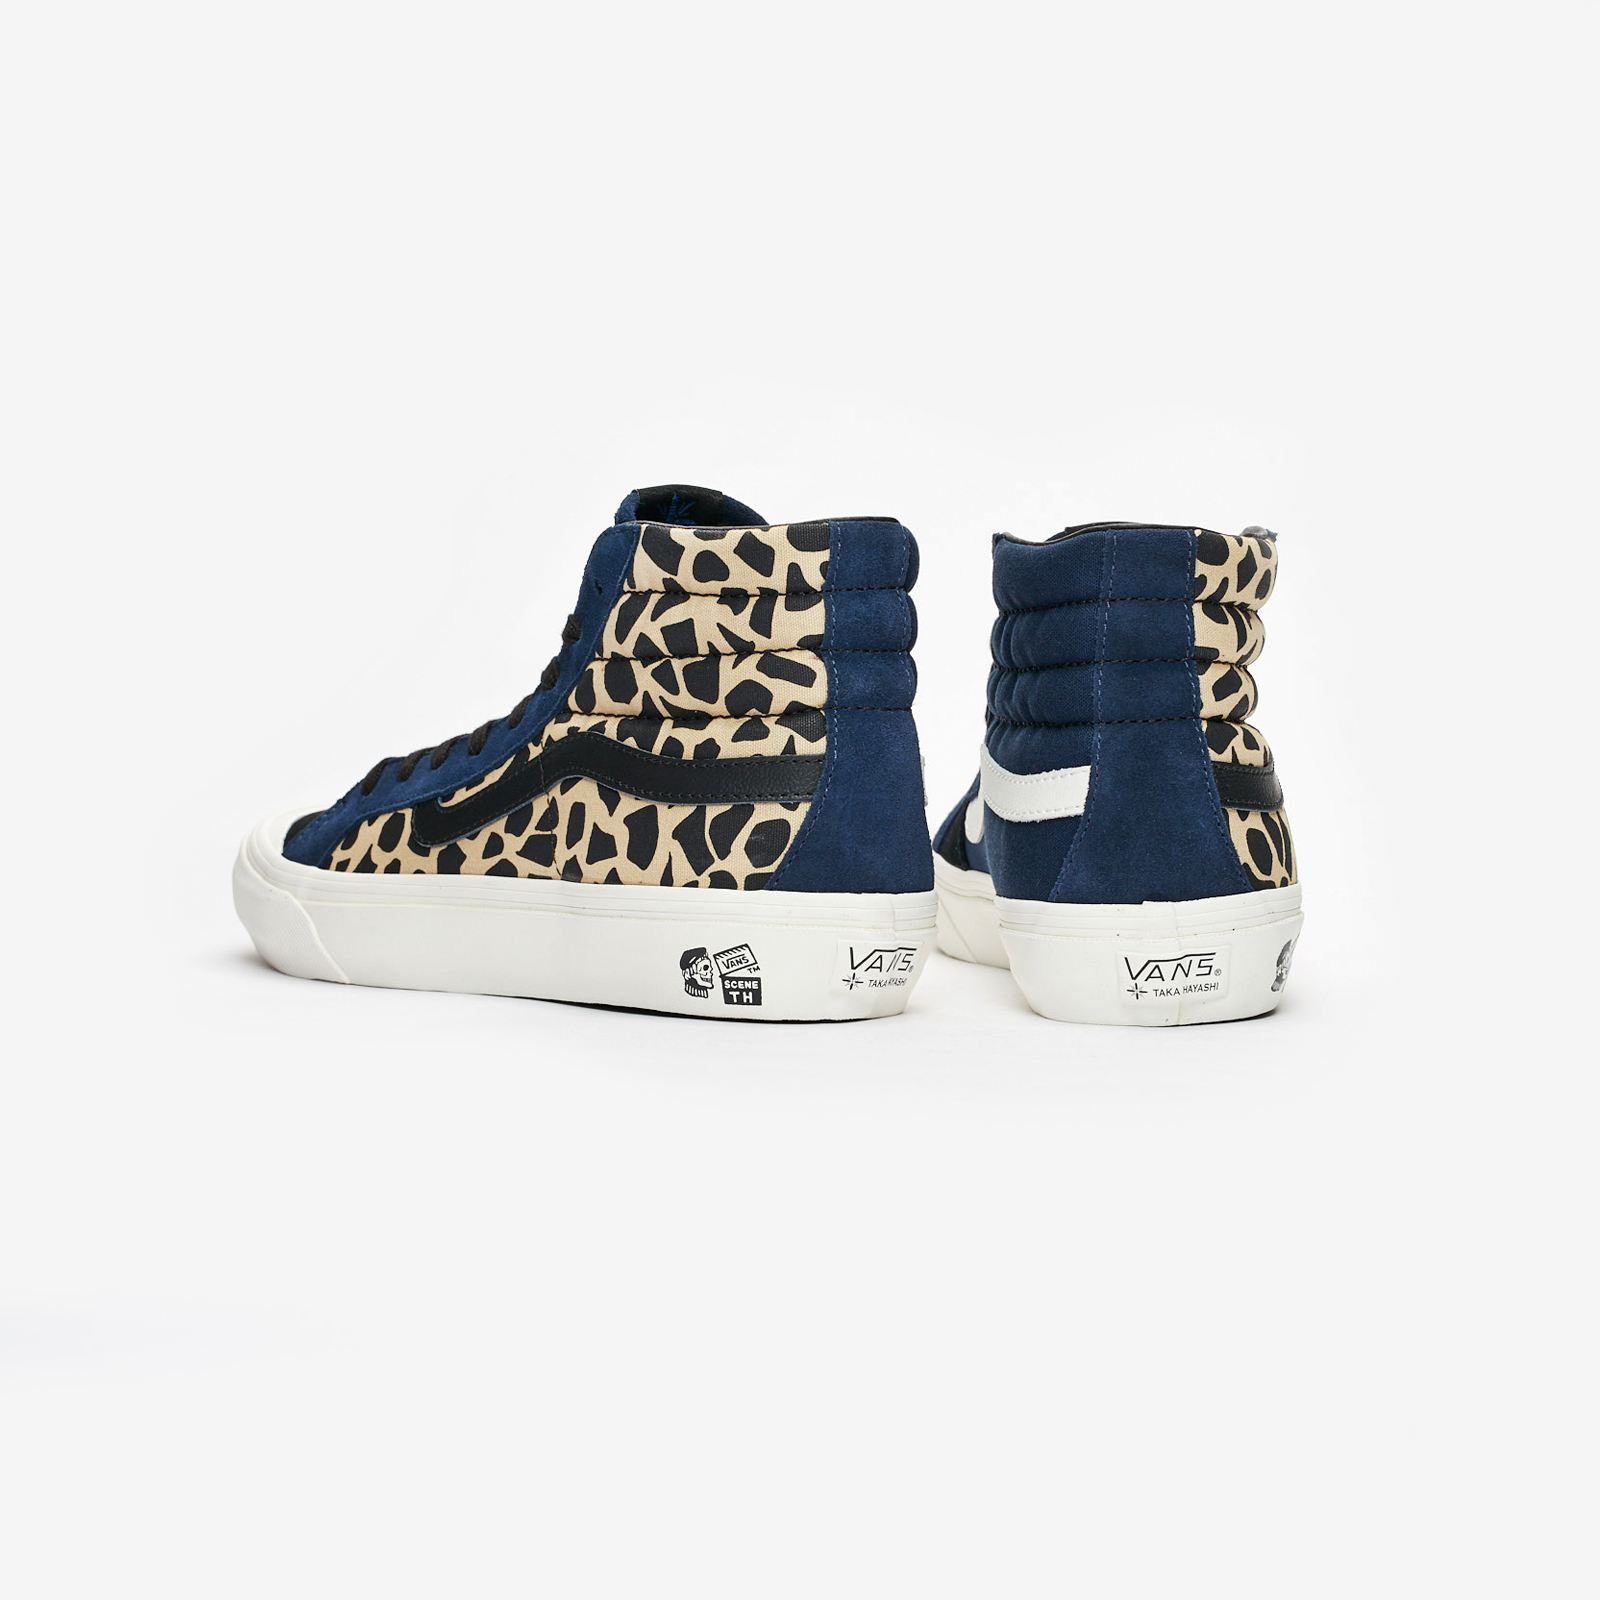 53ad3c61fb9 Vans TH Style 138 LX - Vn0a3zcoure - Sneakersnstuff